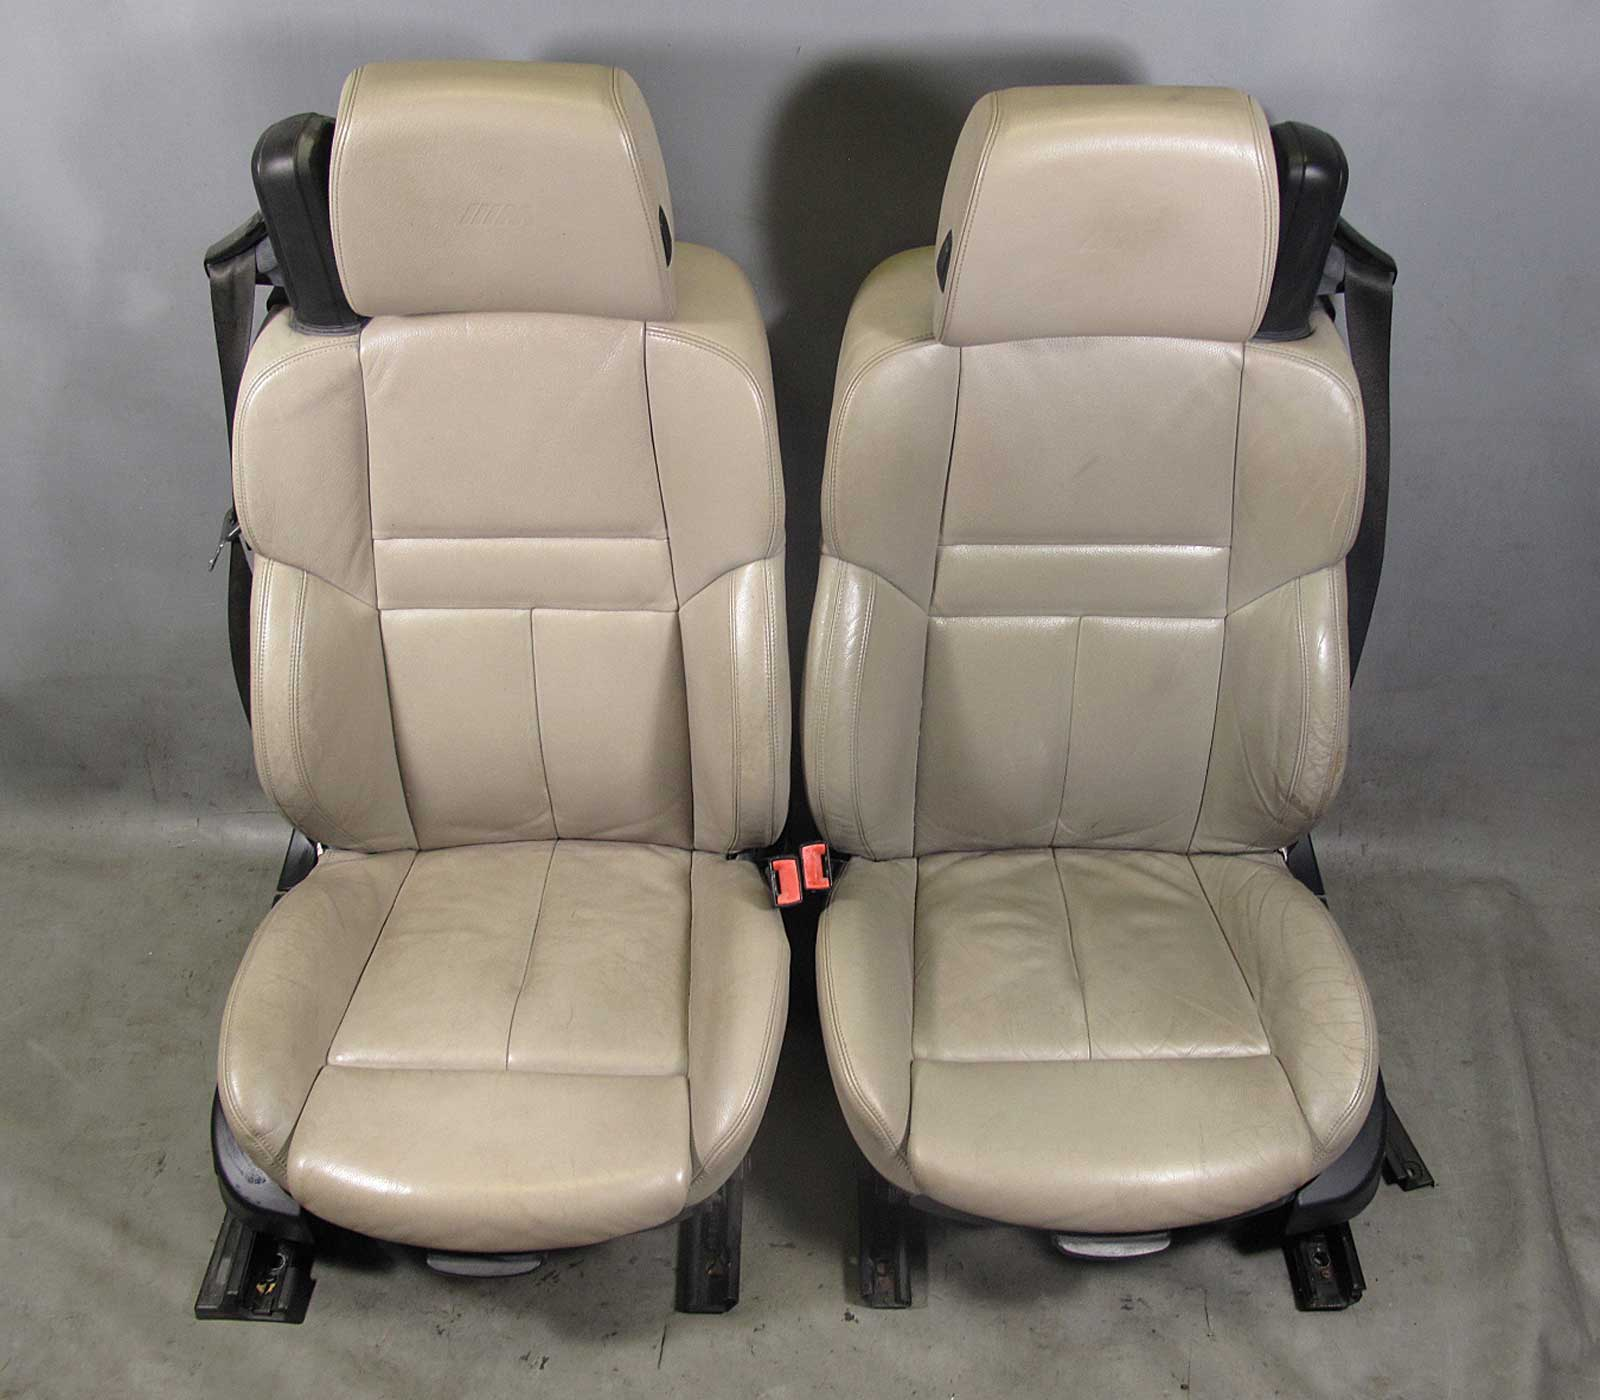 Bmw Z3 Sport Seats: Bmw Factory Seat Covers